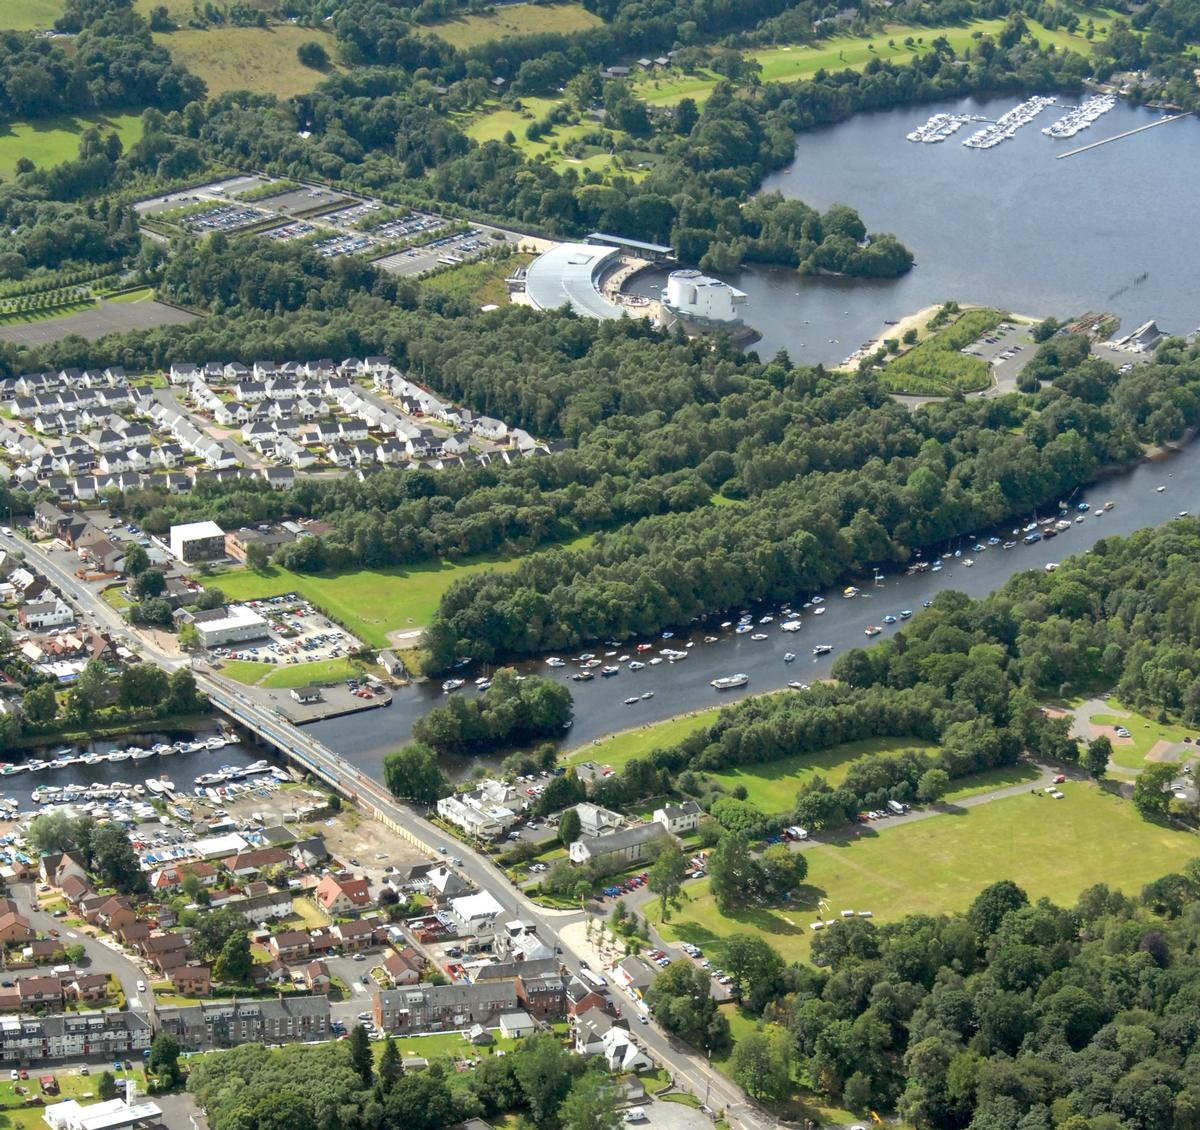 The resort would be built in the West Riverside area of Loch Lomond / Scottish Enterprise